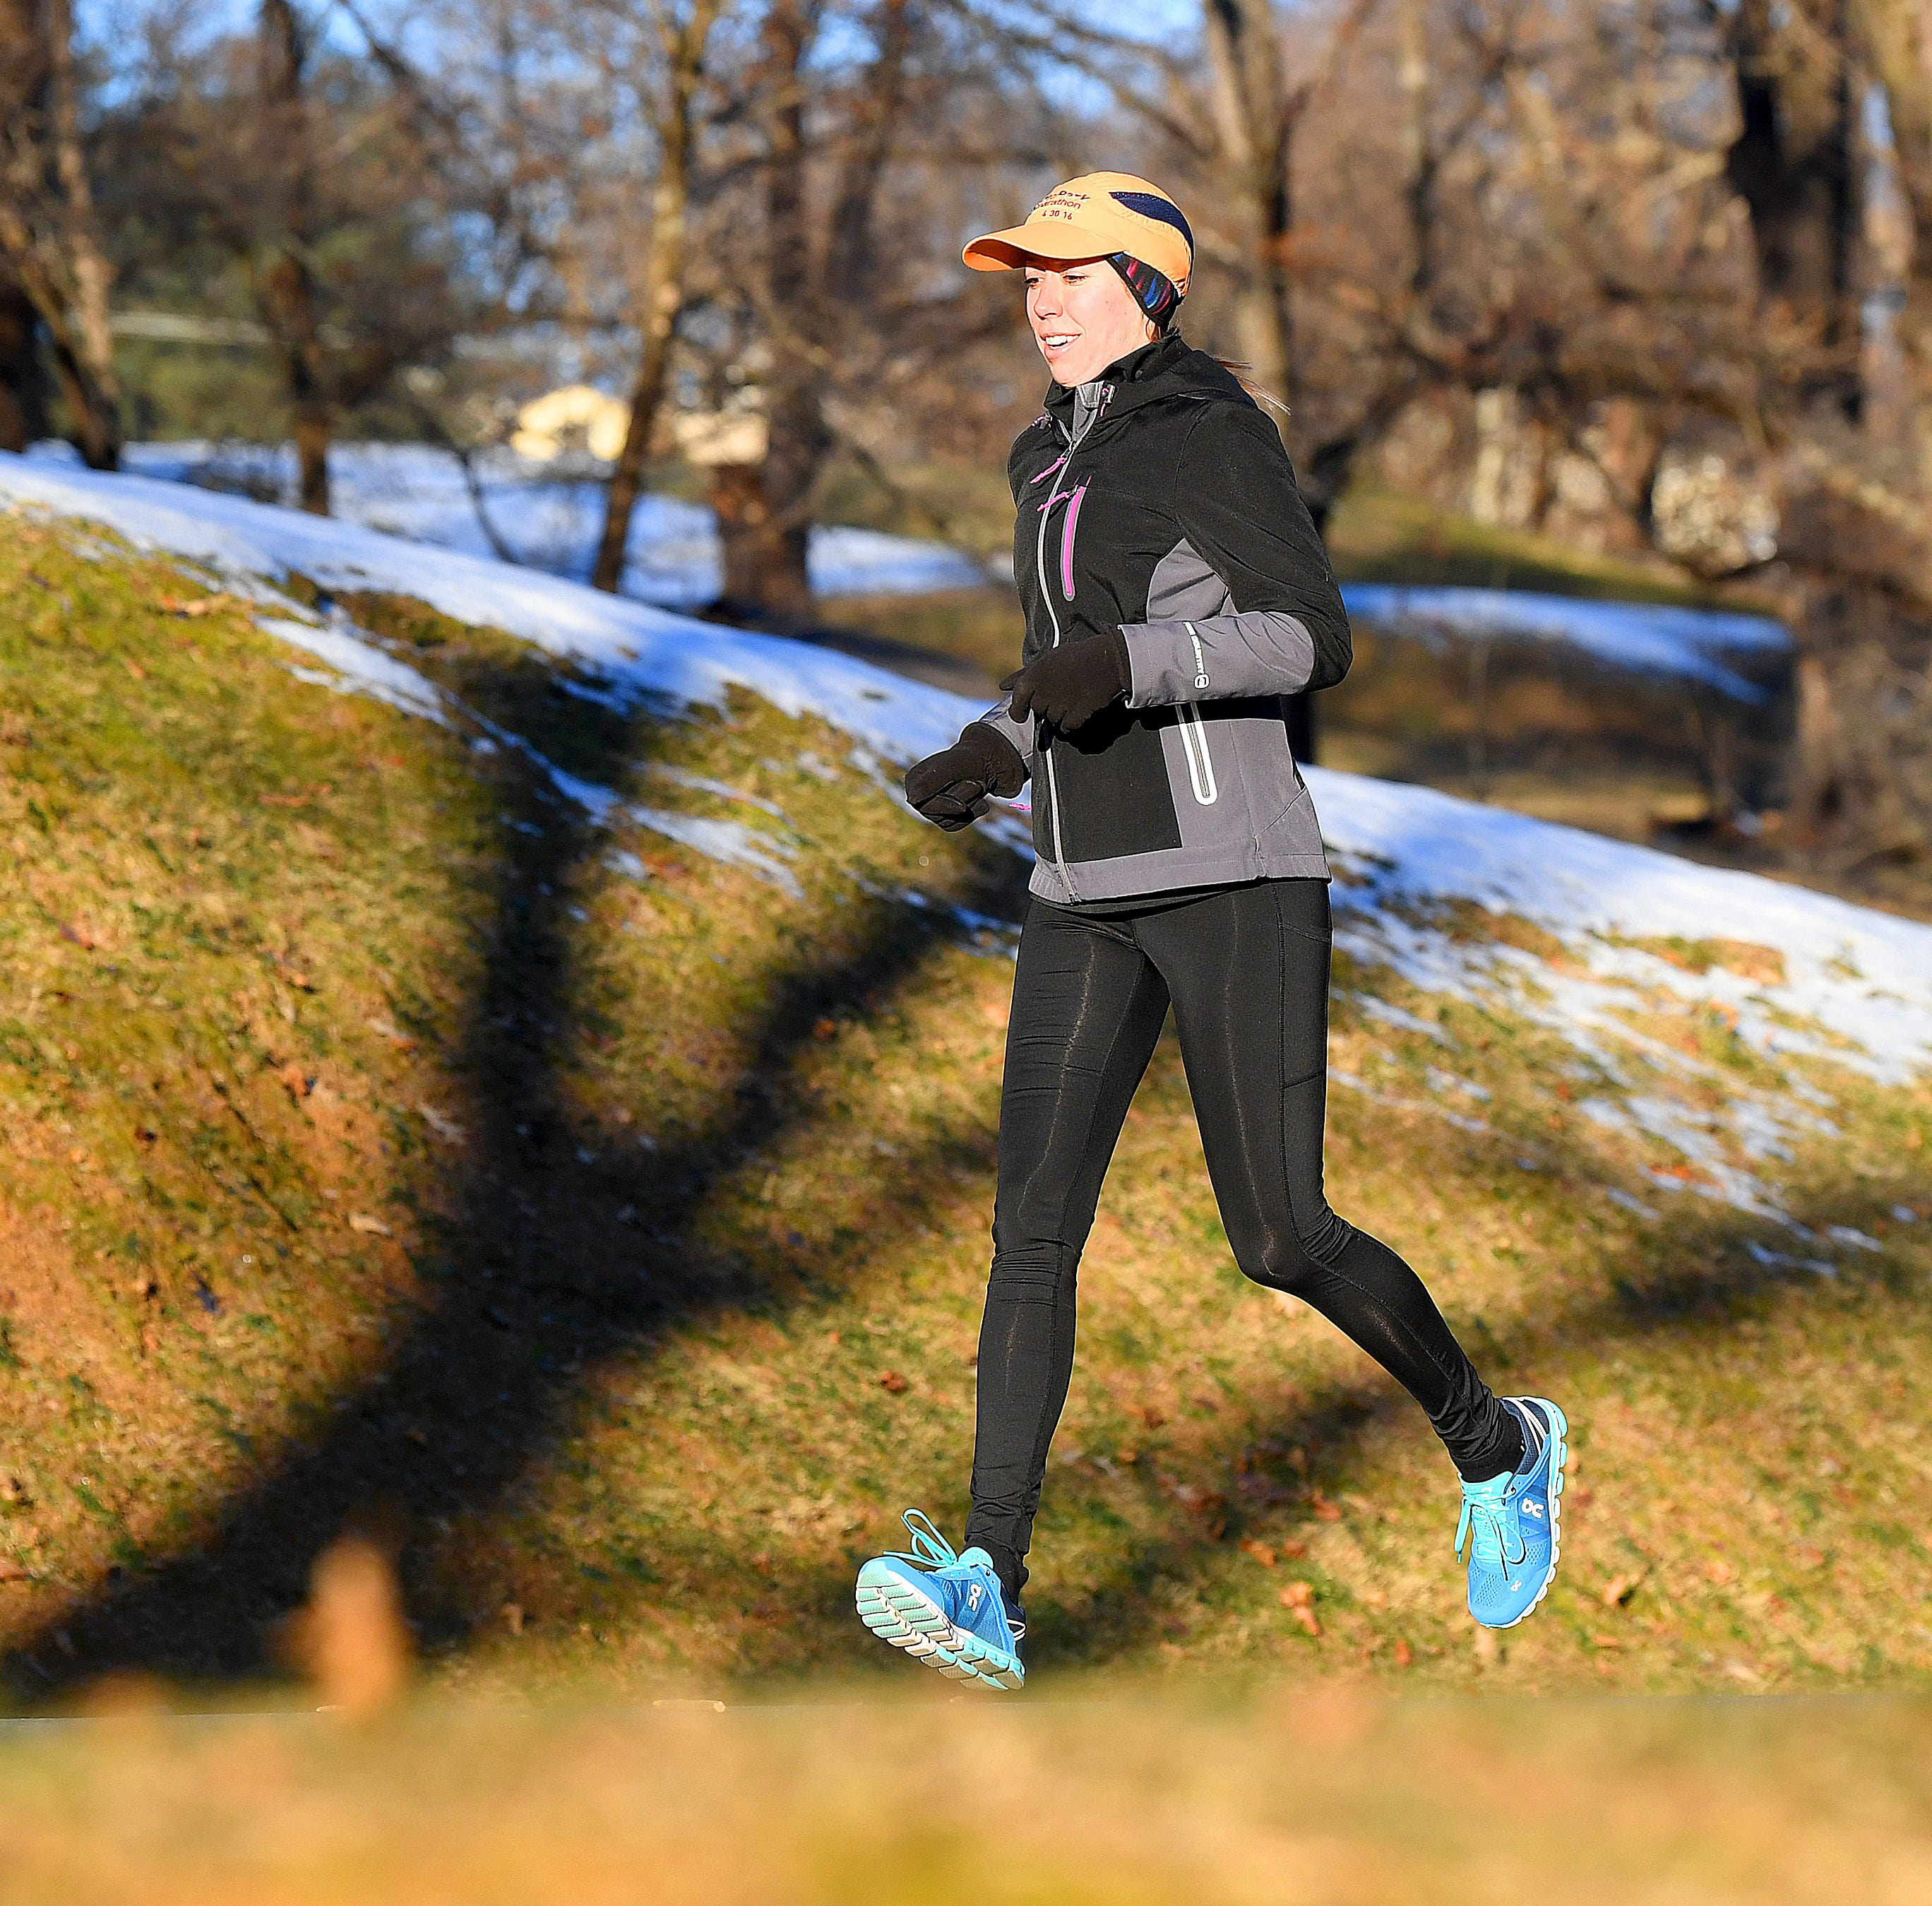 Cold-weather doesn't deter Staunton runners